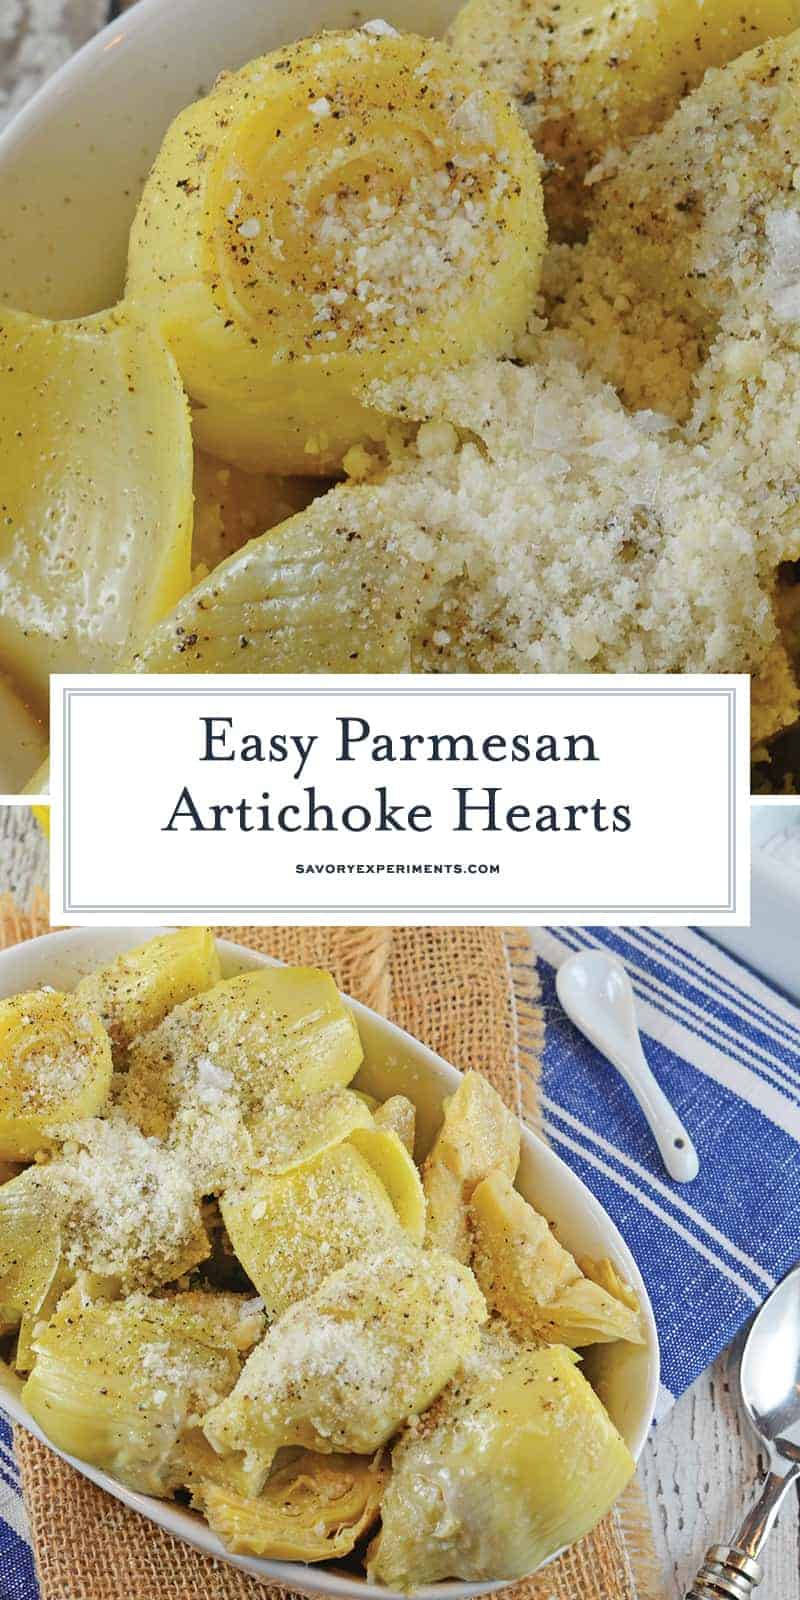 Parmesan Artichoke Hearts will only set you back 10 minutes! After that, you will have an amazing artichoke side dish! #artichokerecipe #artichokehearts www.savoryexperiments.com